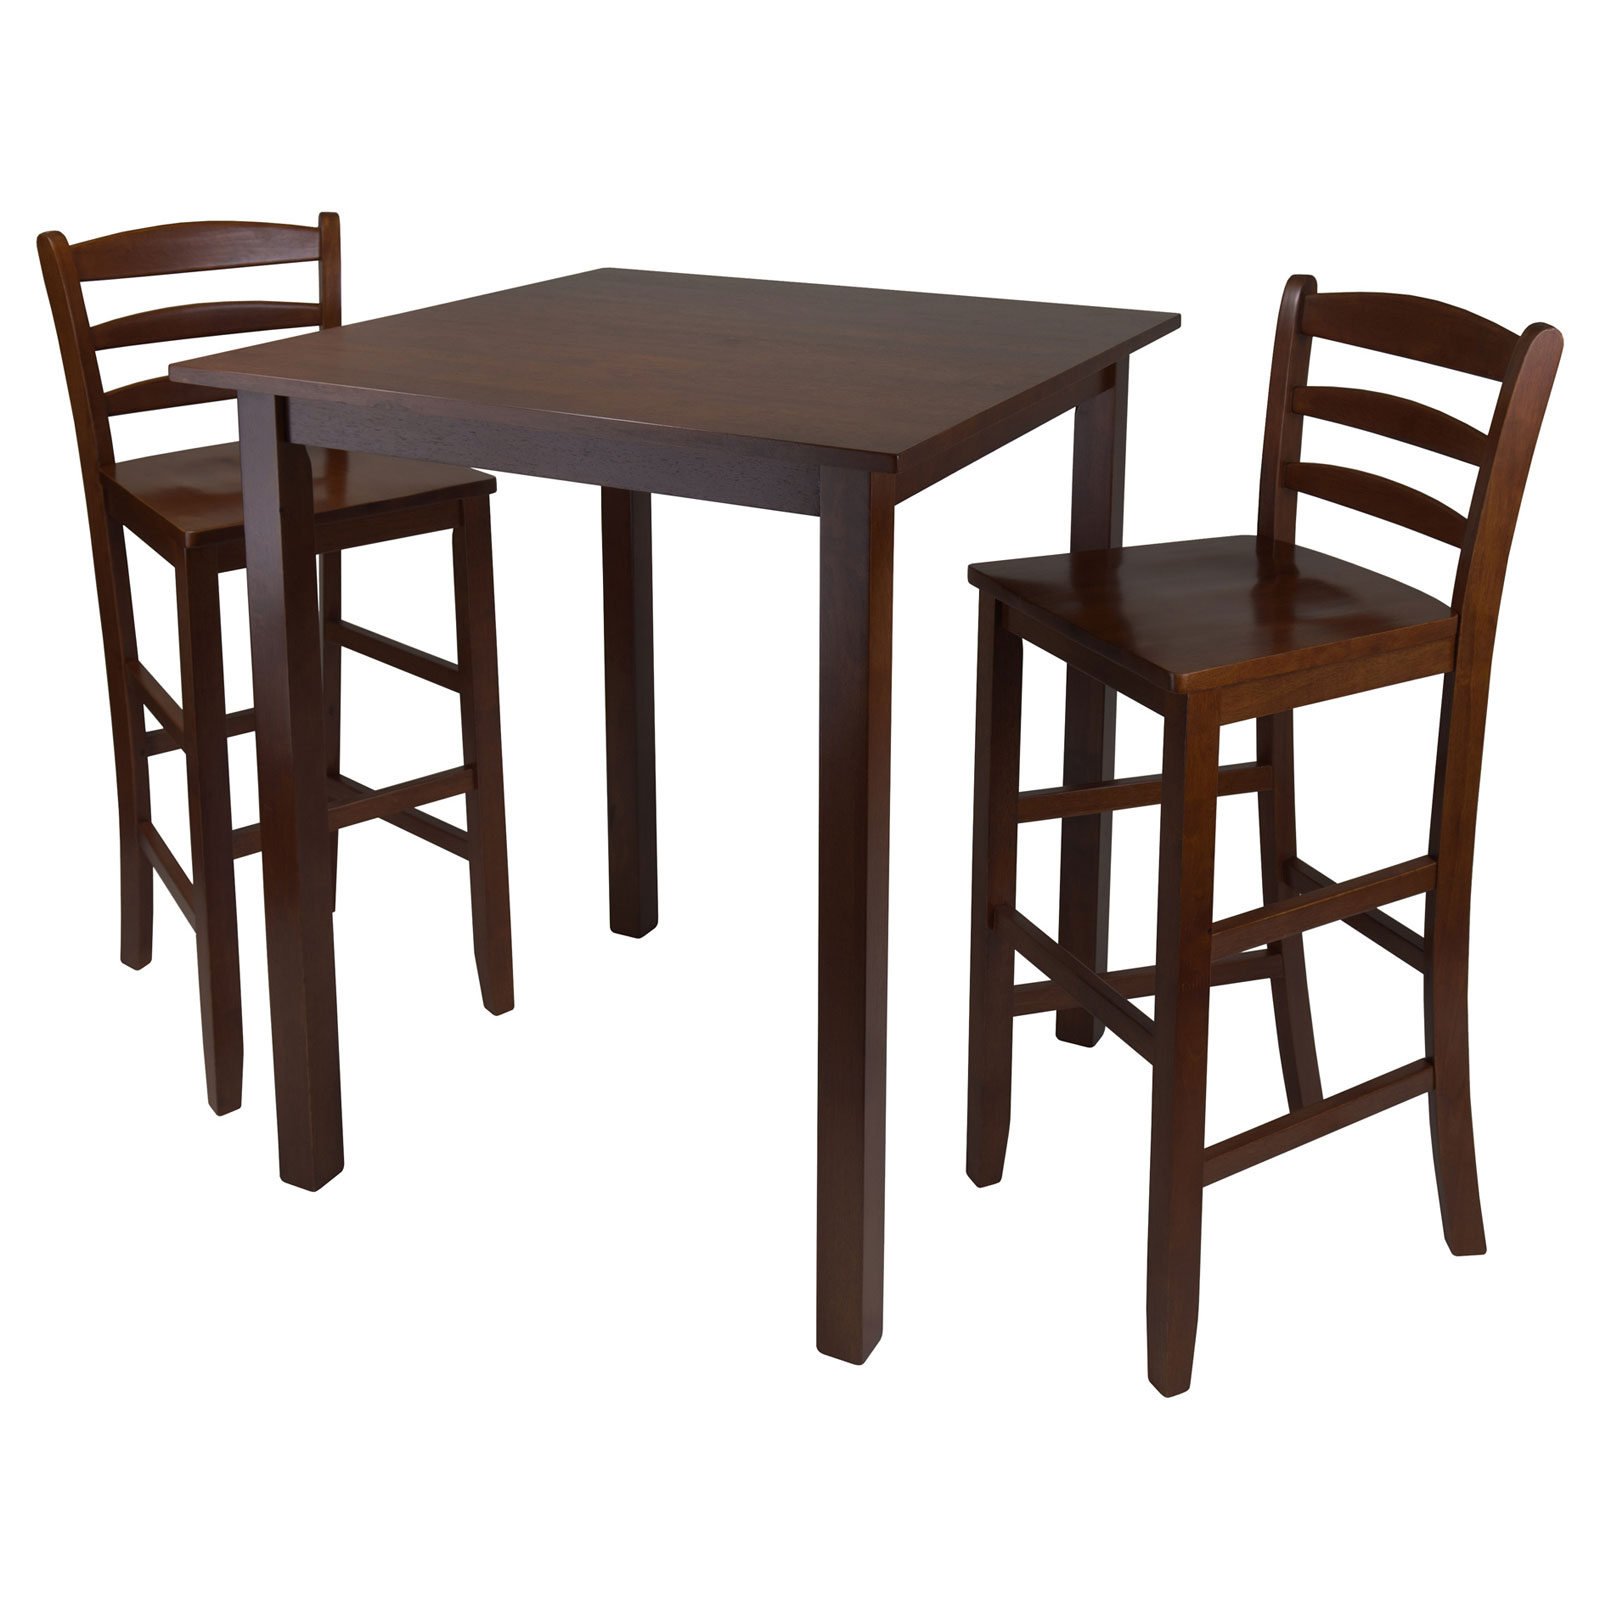 High Table With Stools: Parkland High Table With 2 Ladder Back Stools